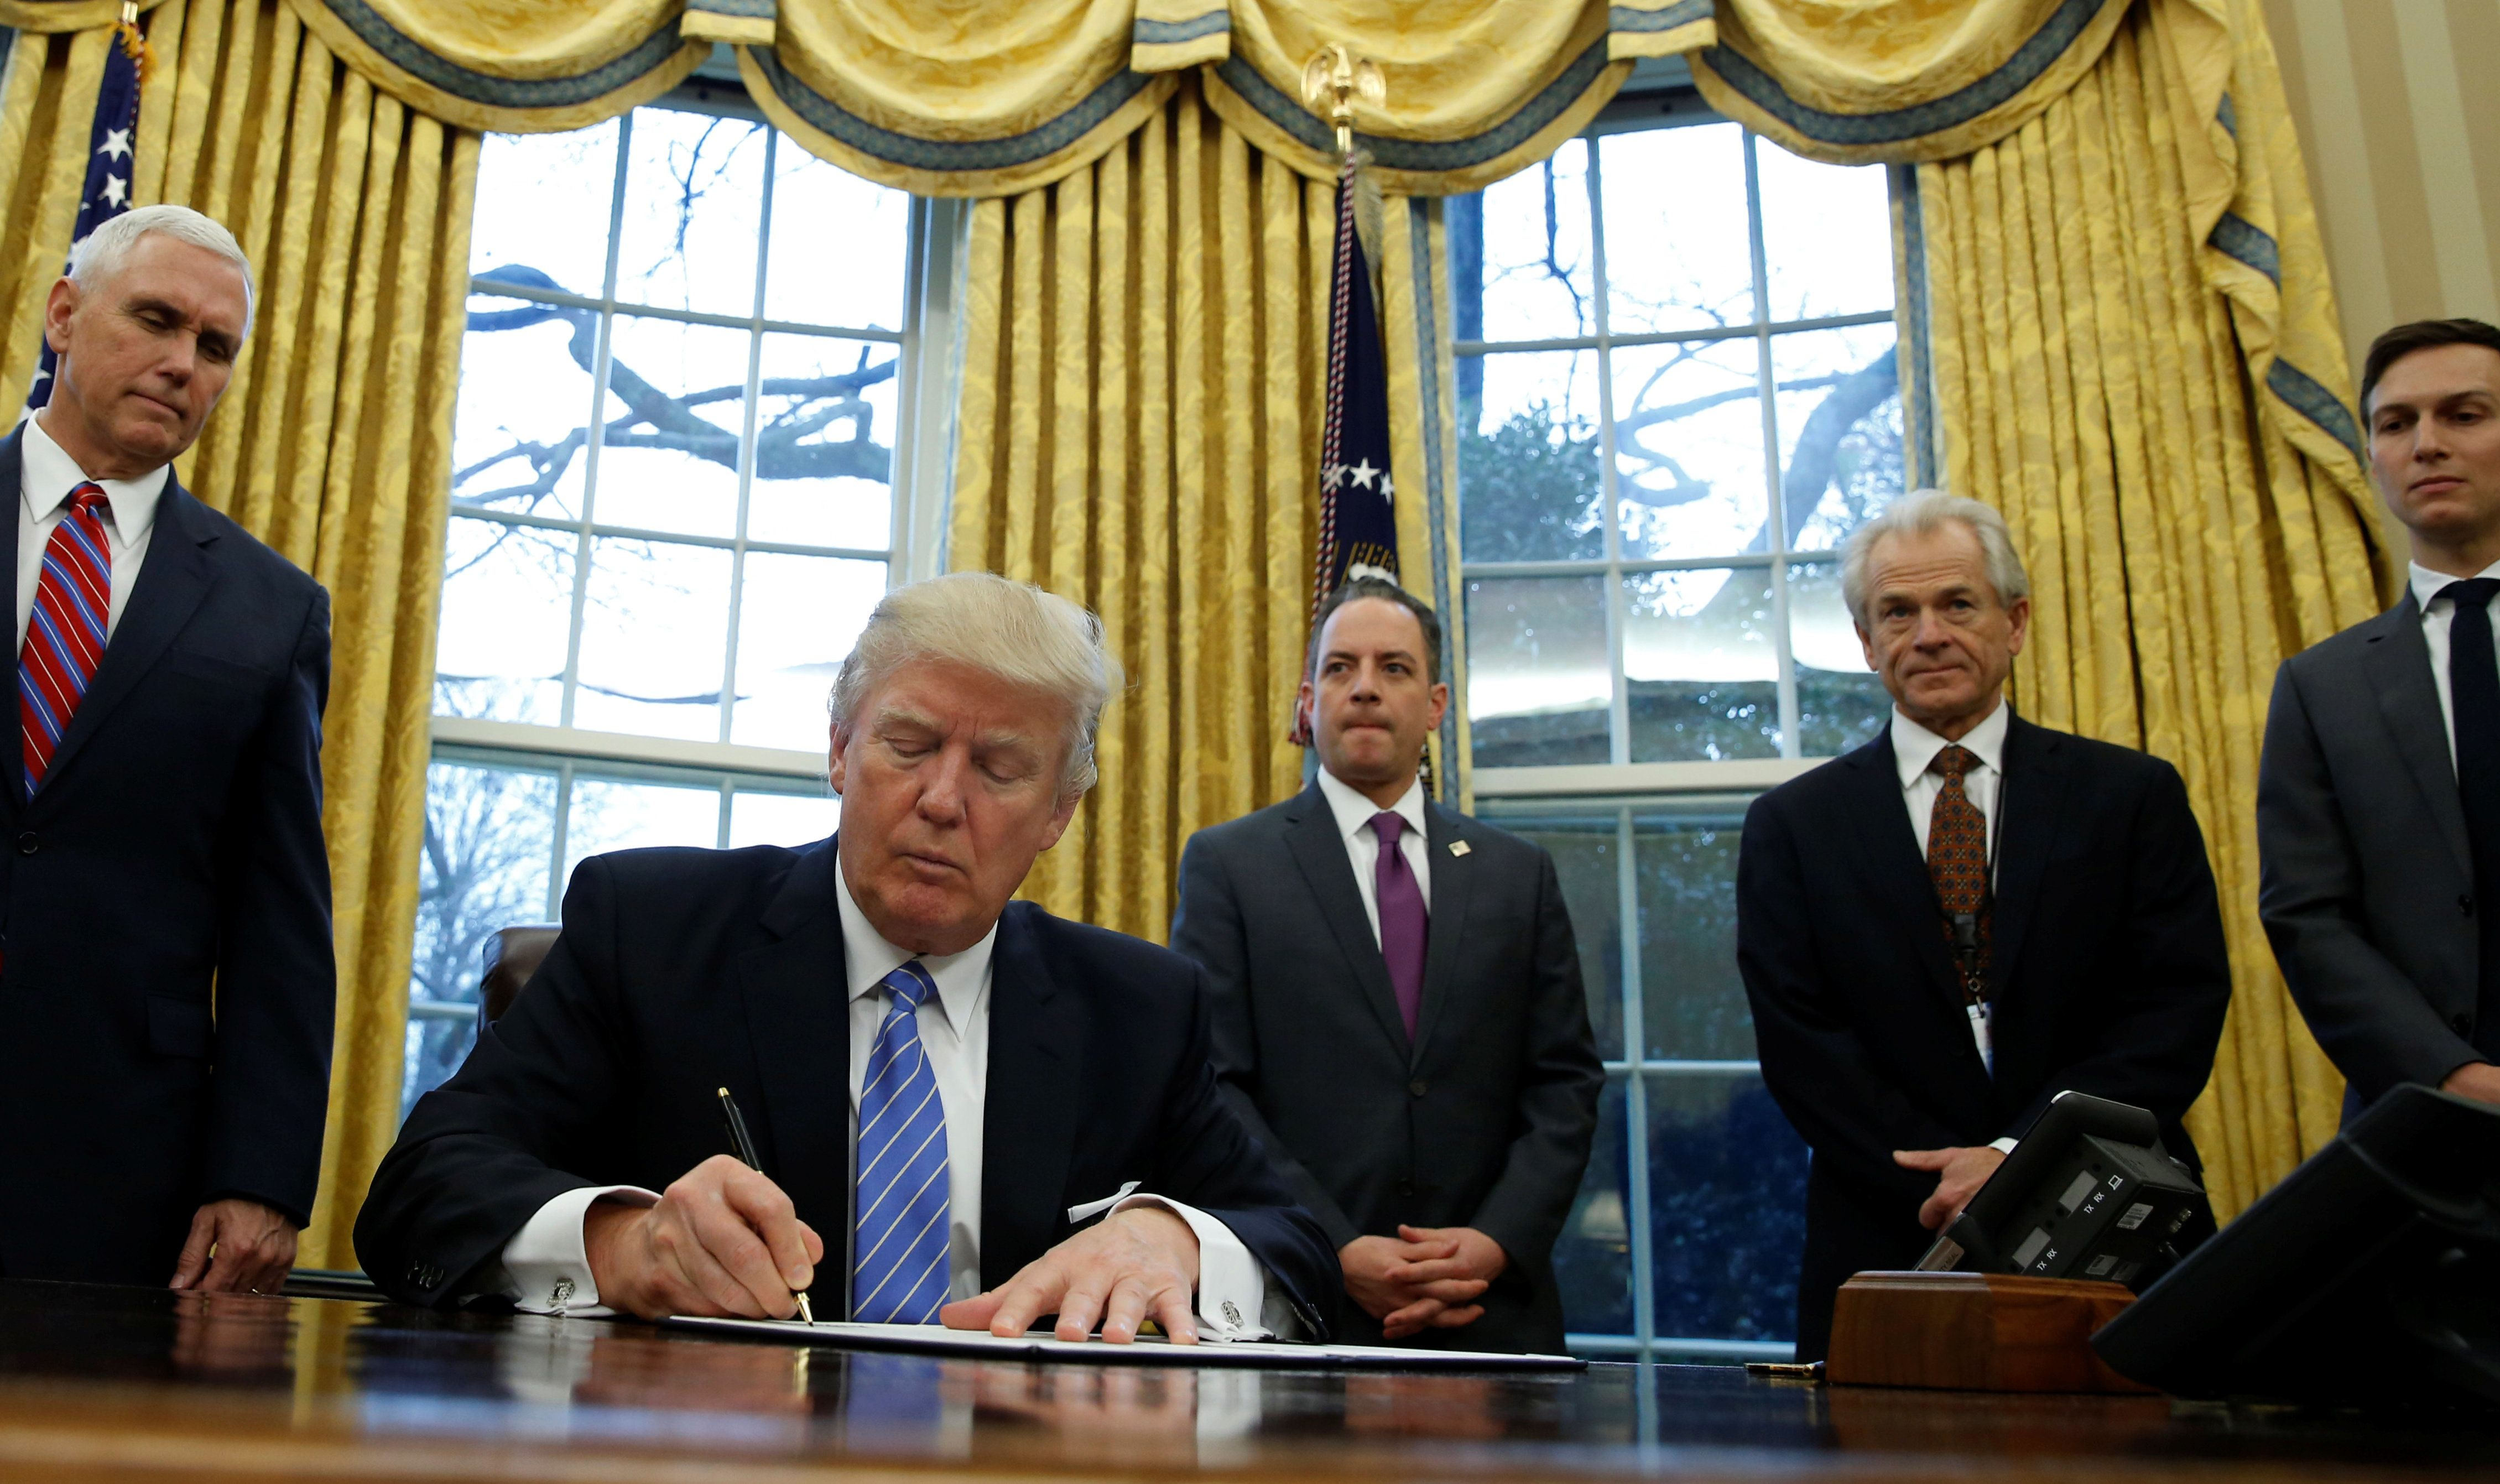 President Donald Trump signs an executive order that places a hiring freeze on non-military federal workers, Jan. 23, 2017.